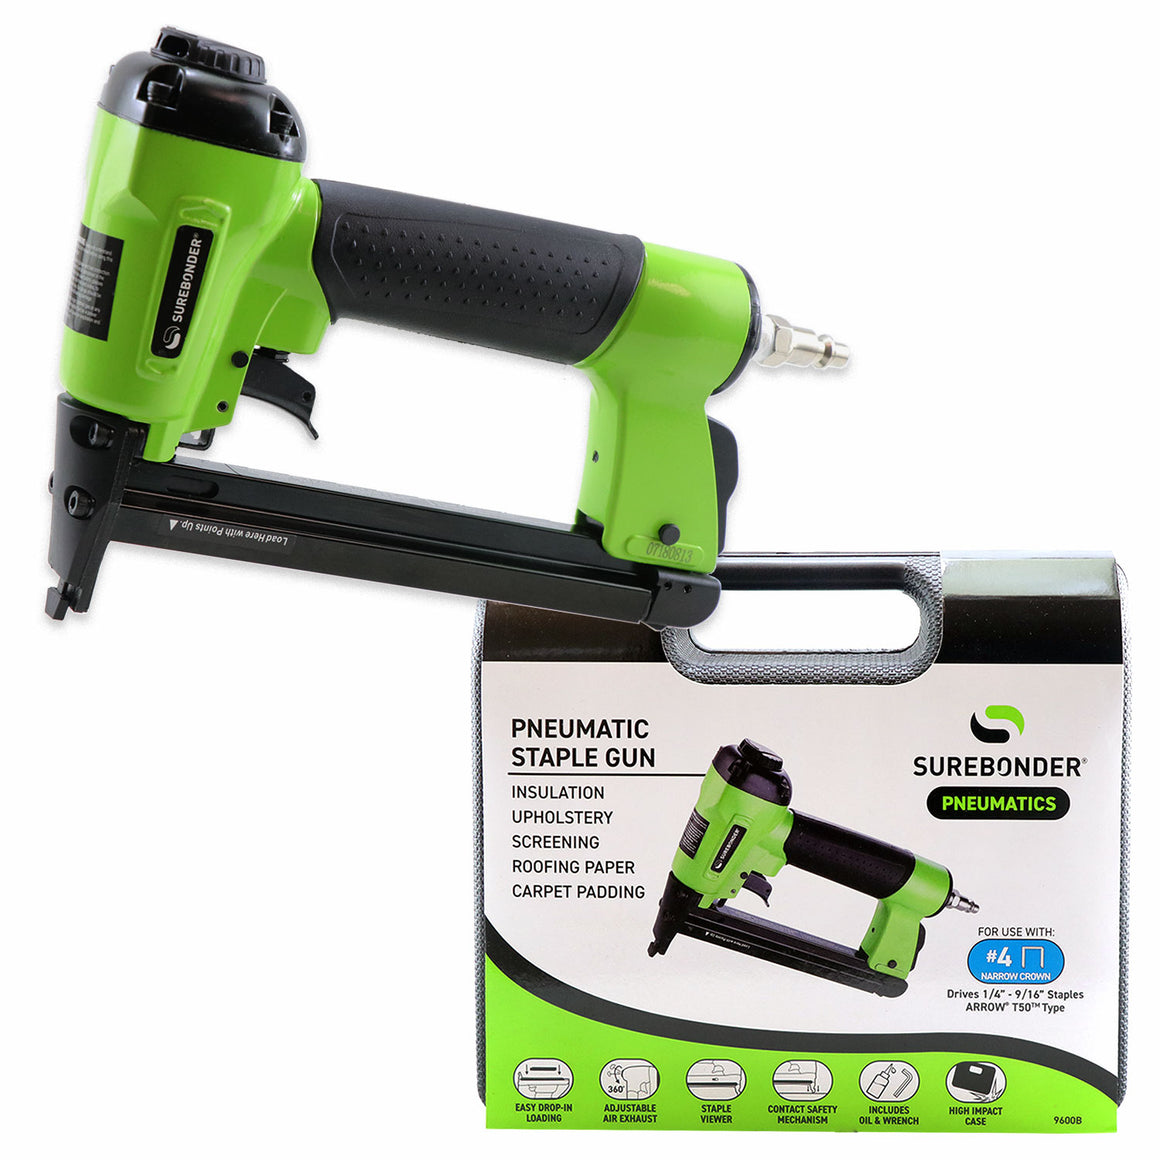 Surebonder pneumatic heavy duty standard T-50 type stapler in green, cushioned grip, 4-piece kit including case, Allen wrench and oil.